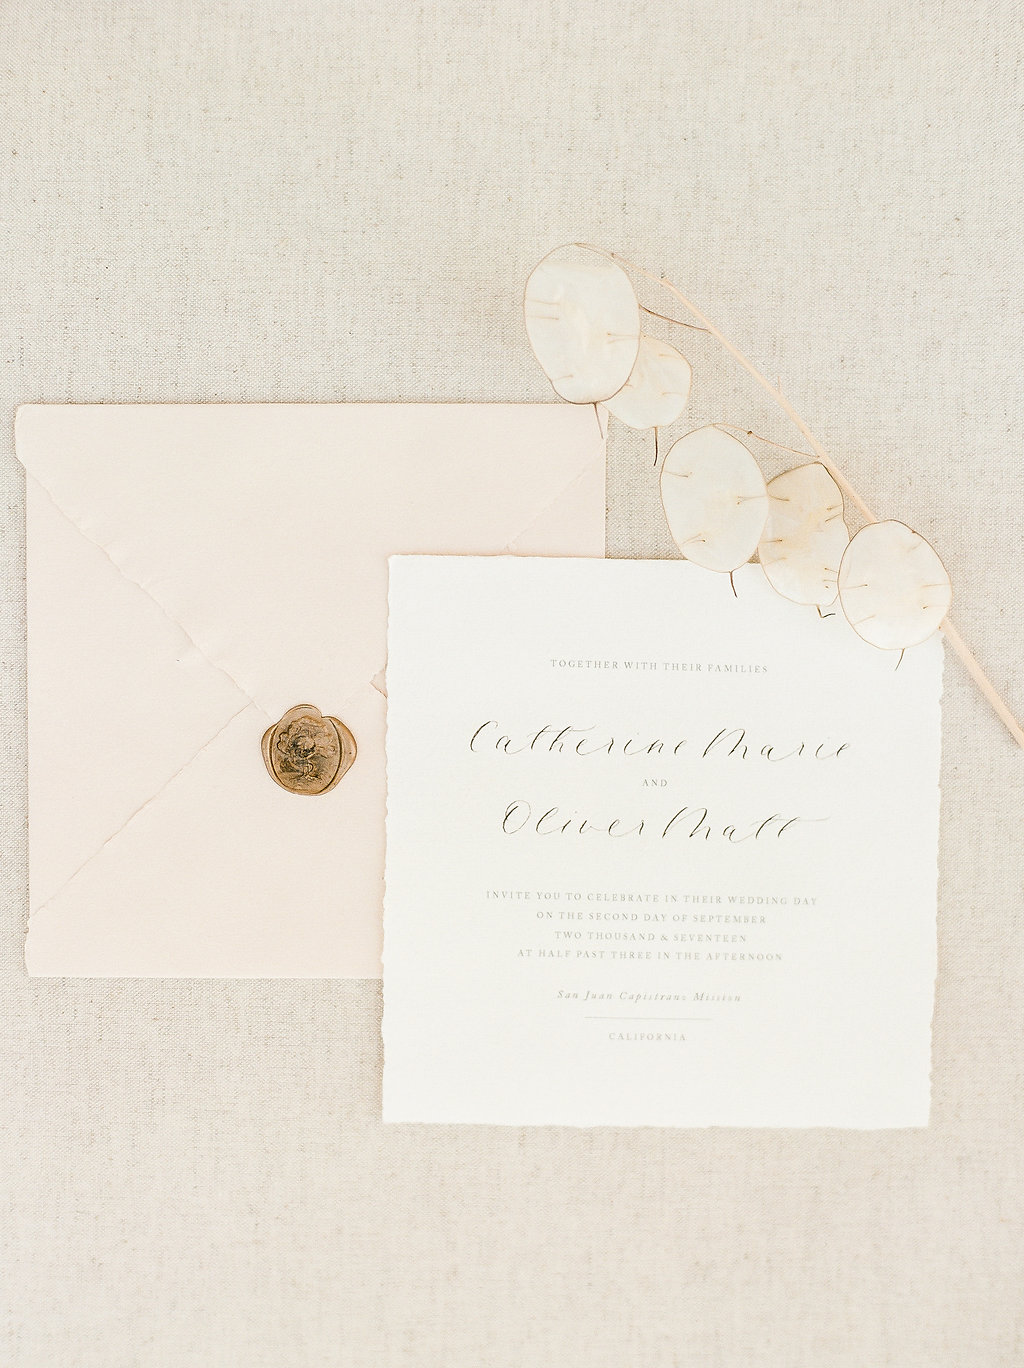 Spanish Mission Style Wedding Ideas Bridal Accessories Summer Flowers Finding Flora Wedding Sparrow Fine Art Flourish Calligraphy Invites Stationery San Juan Capistrano Lunaria